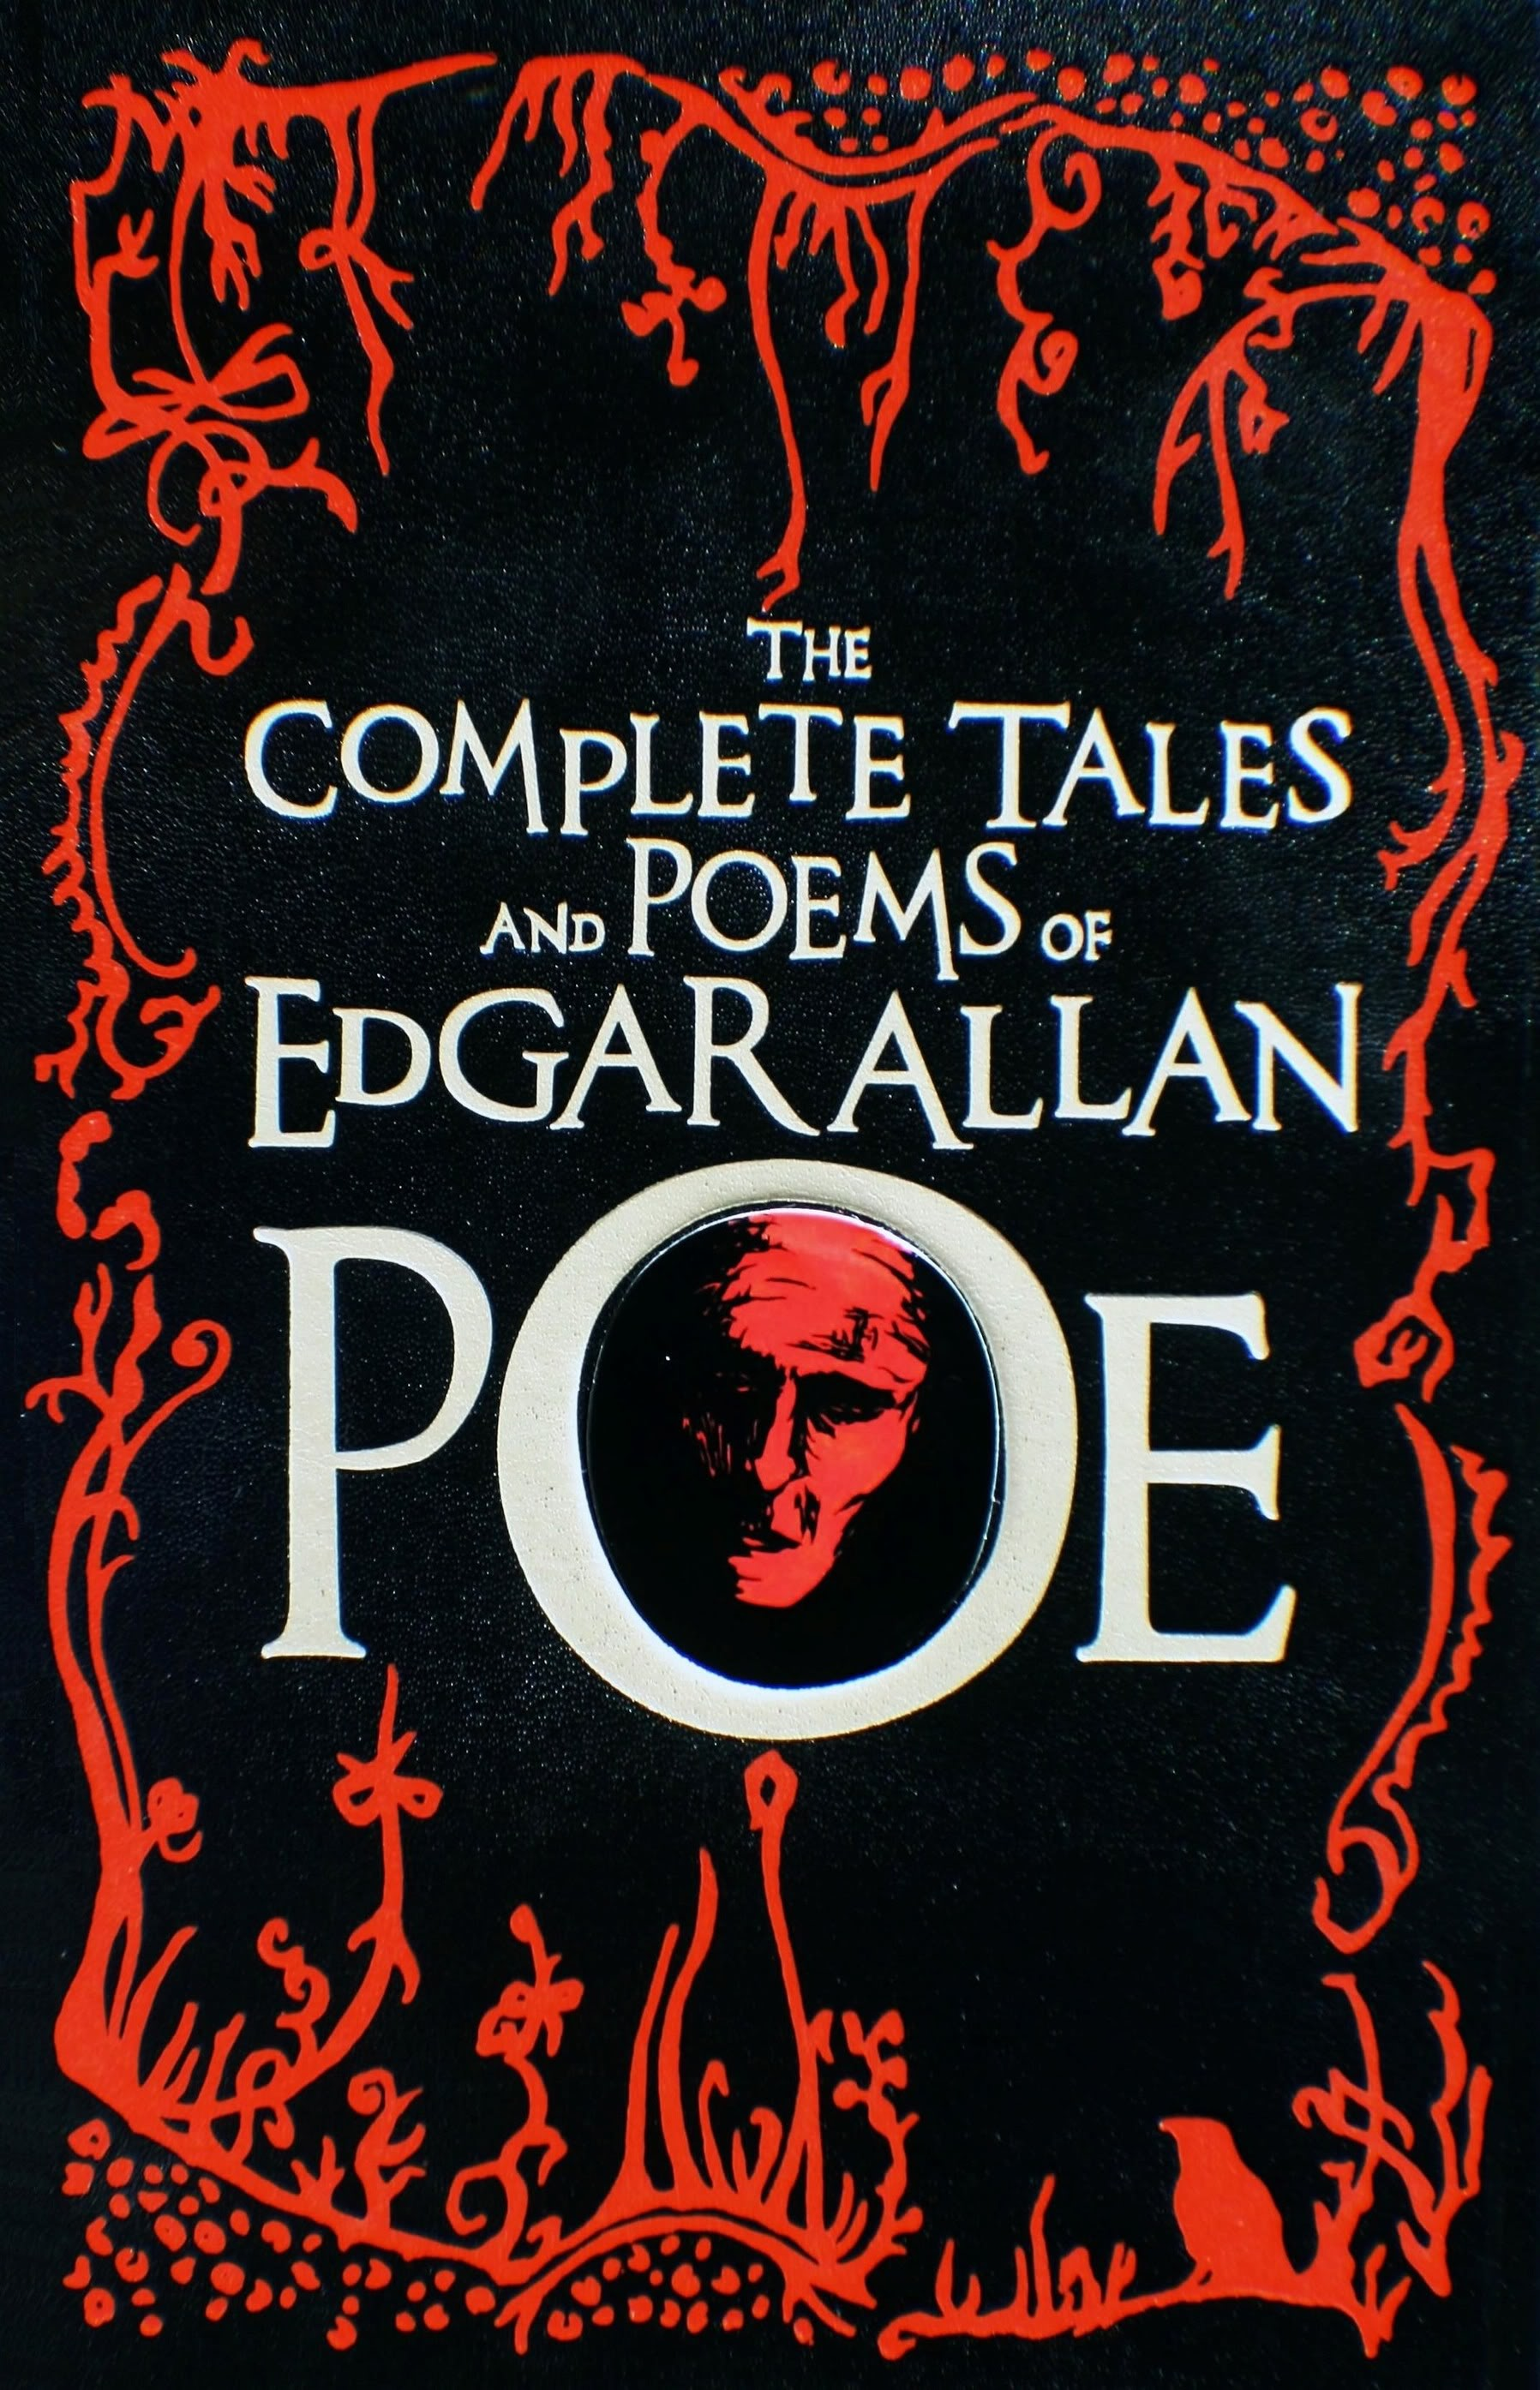 Edgar Allan Poe: Complete Tales and Poems (Amazon)